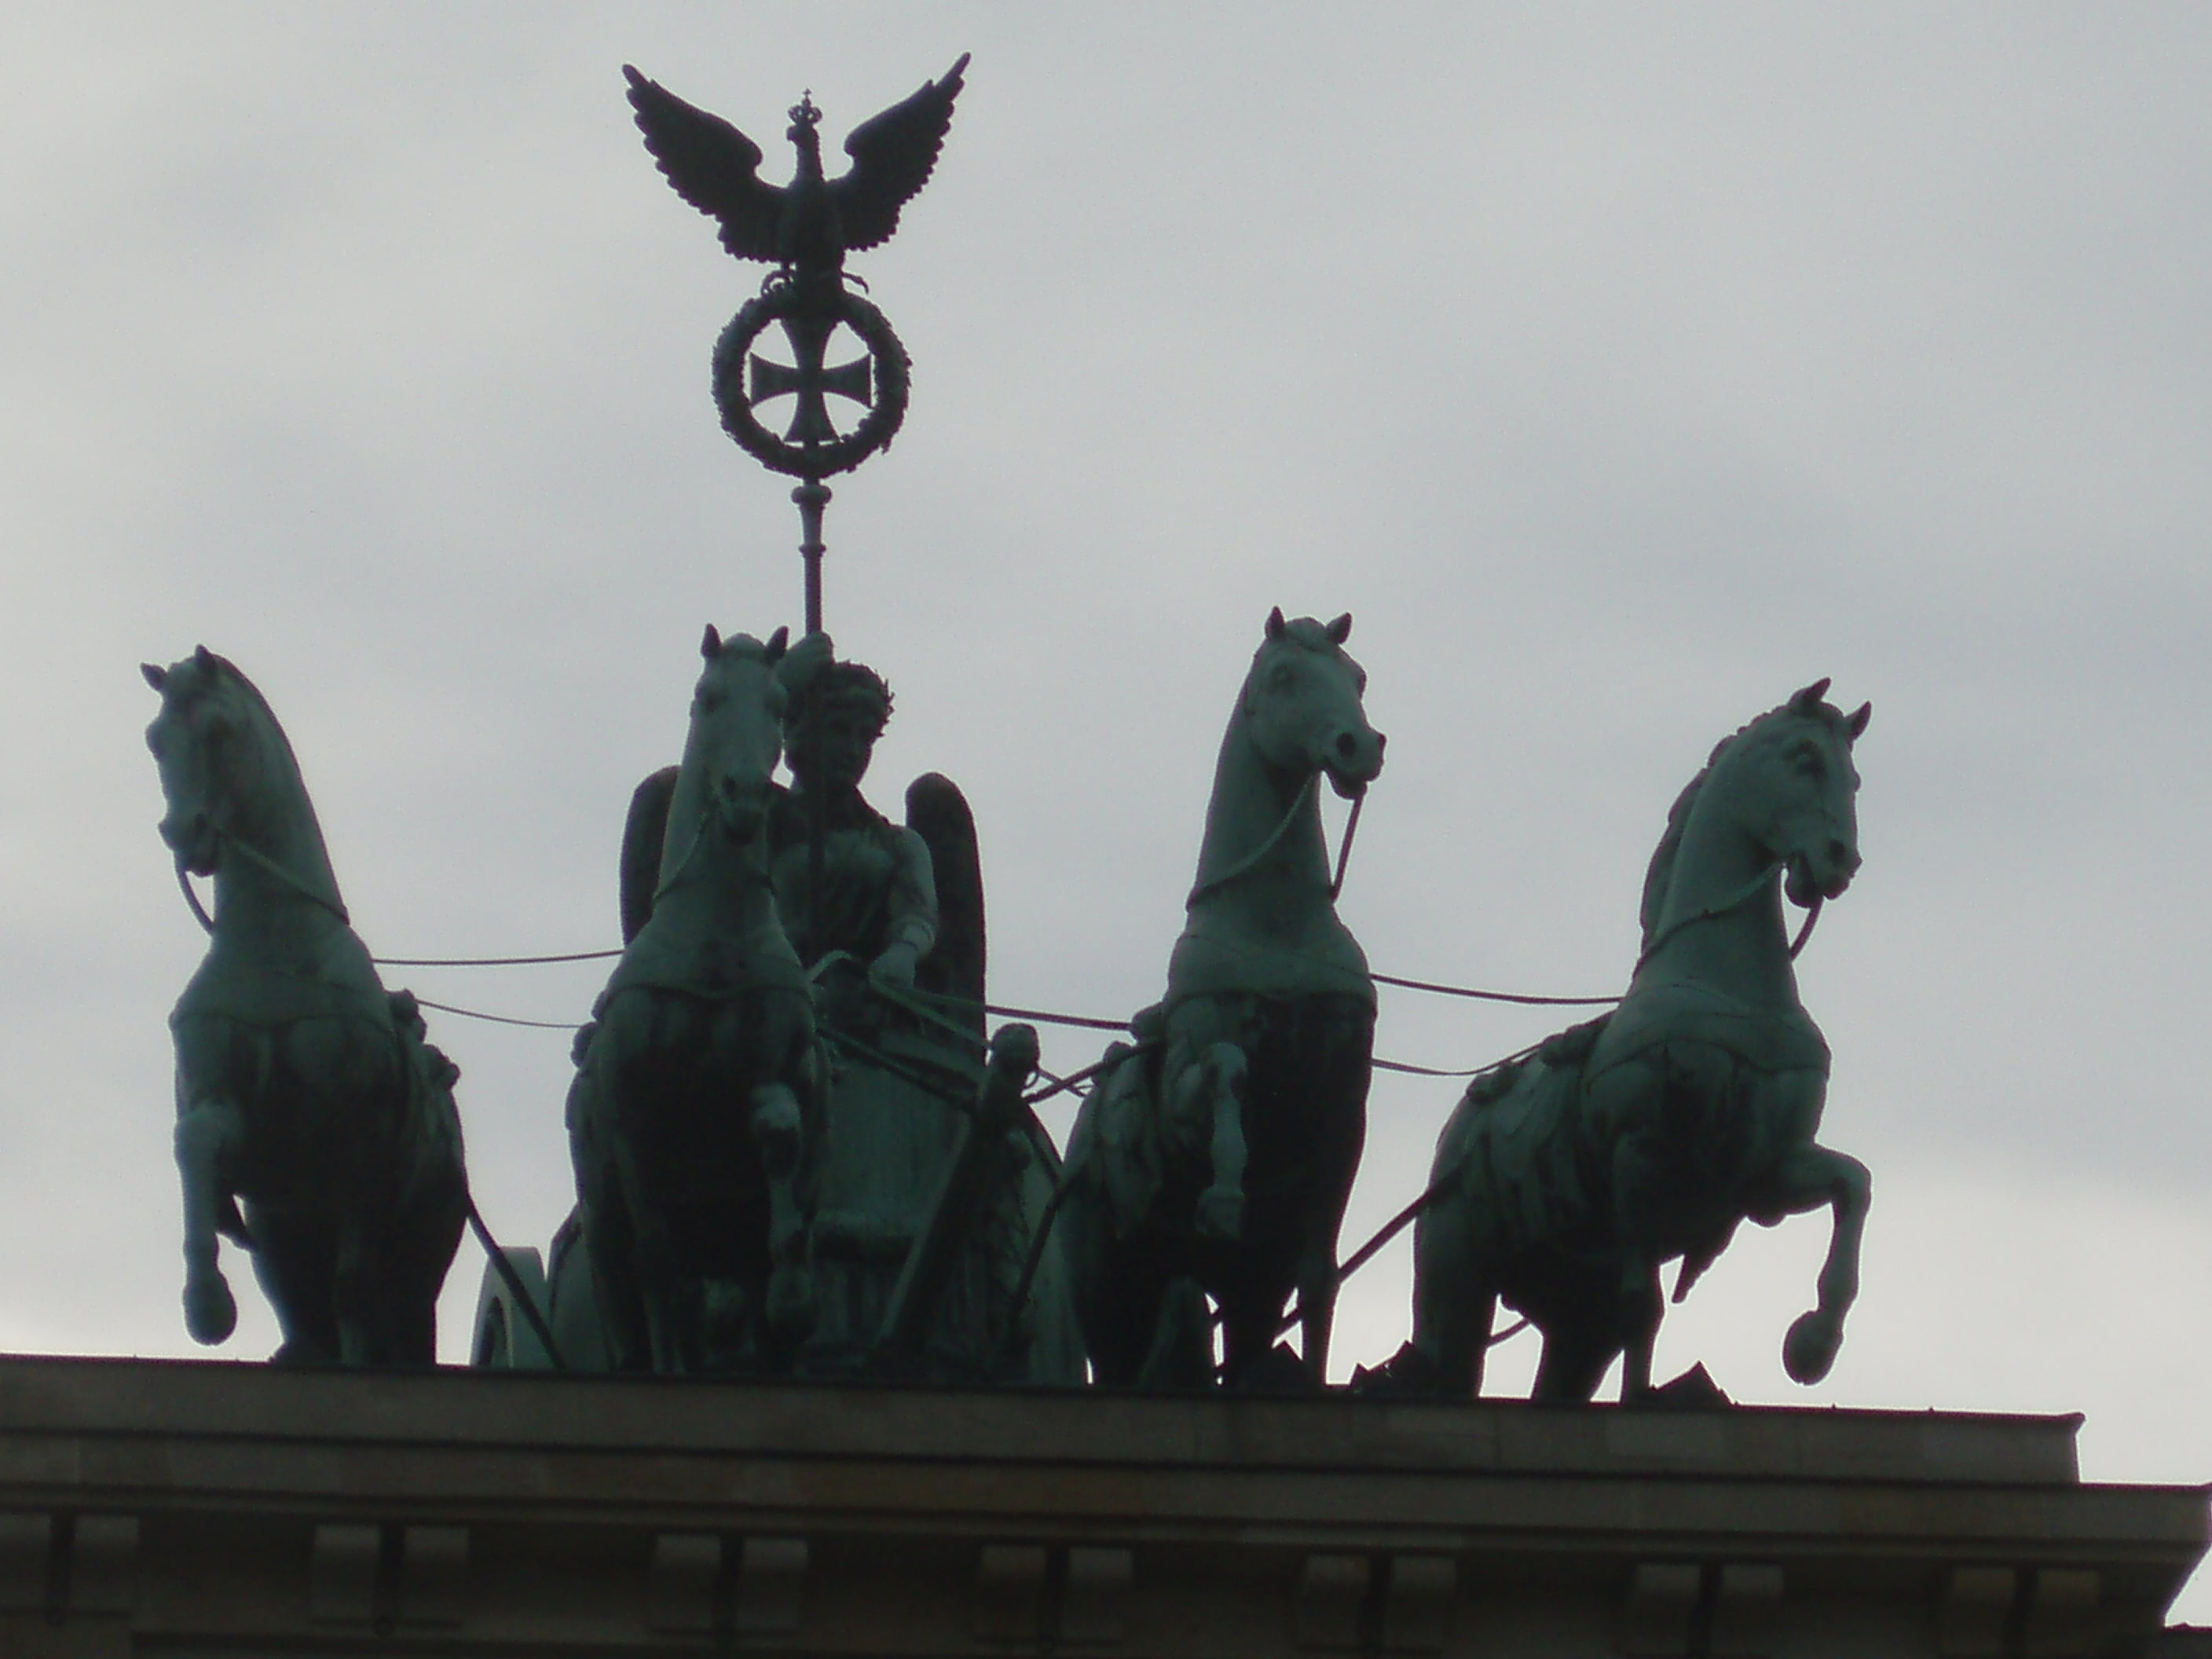 Statue in Brandenburg Gate